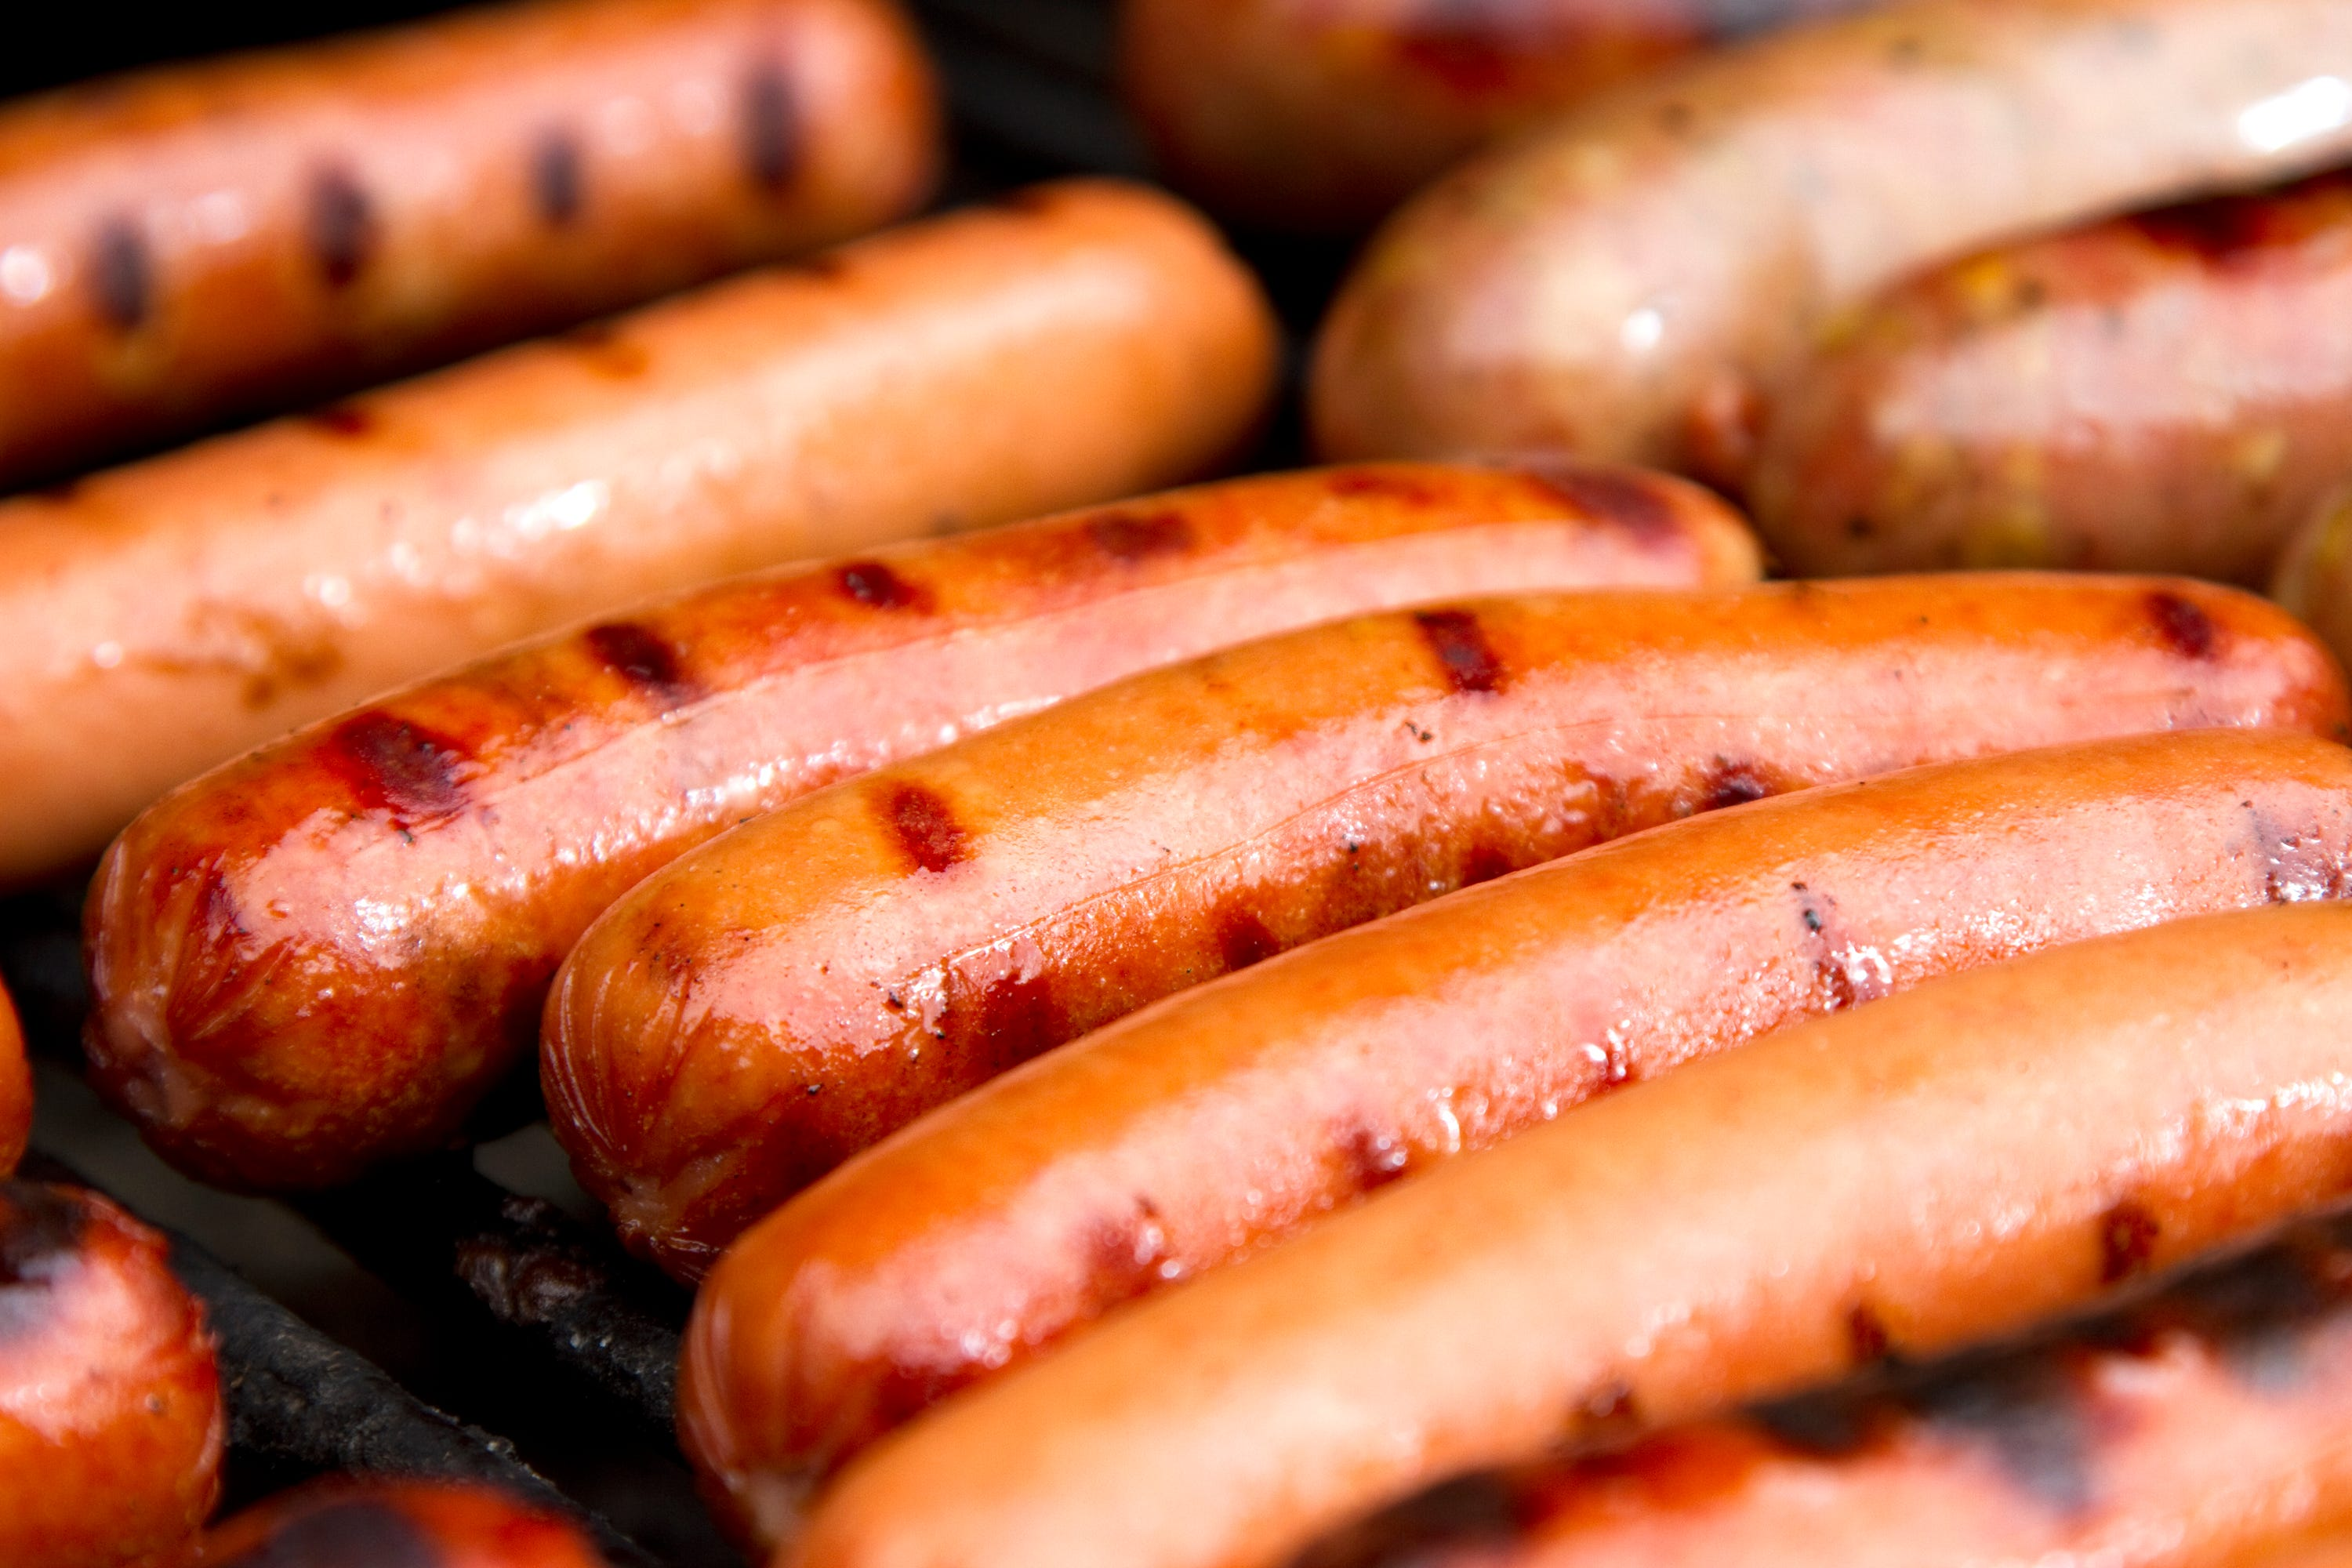 usatoday.com - Zlati Meyer, USA TODAY - Food safety: 1 ton of hot dogs recalled due to concerns about metal pieces